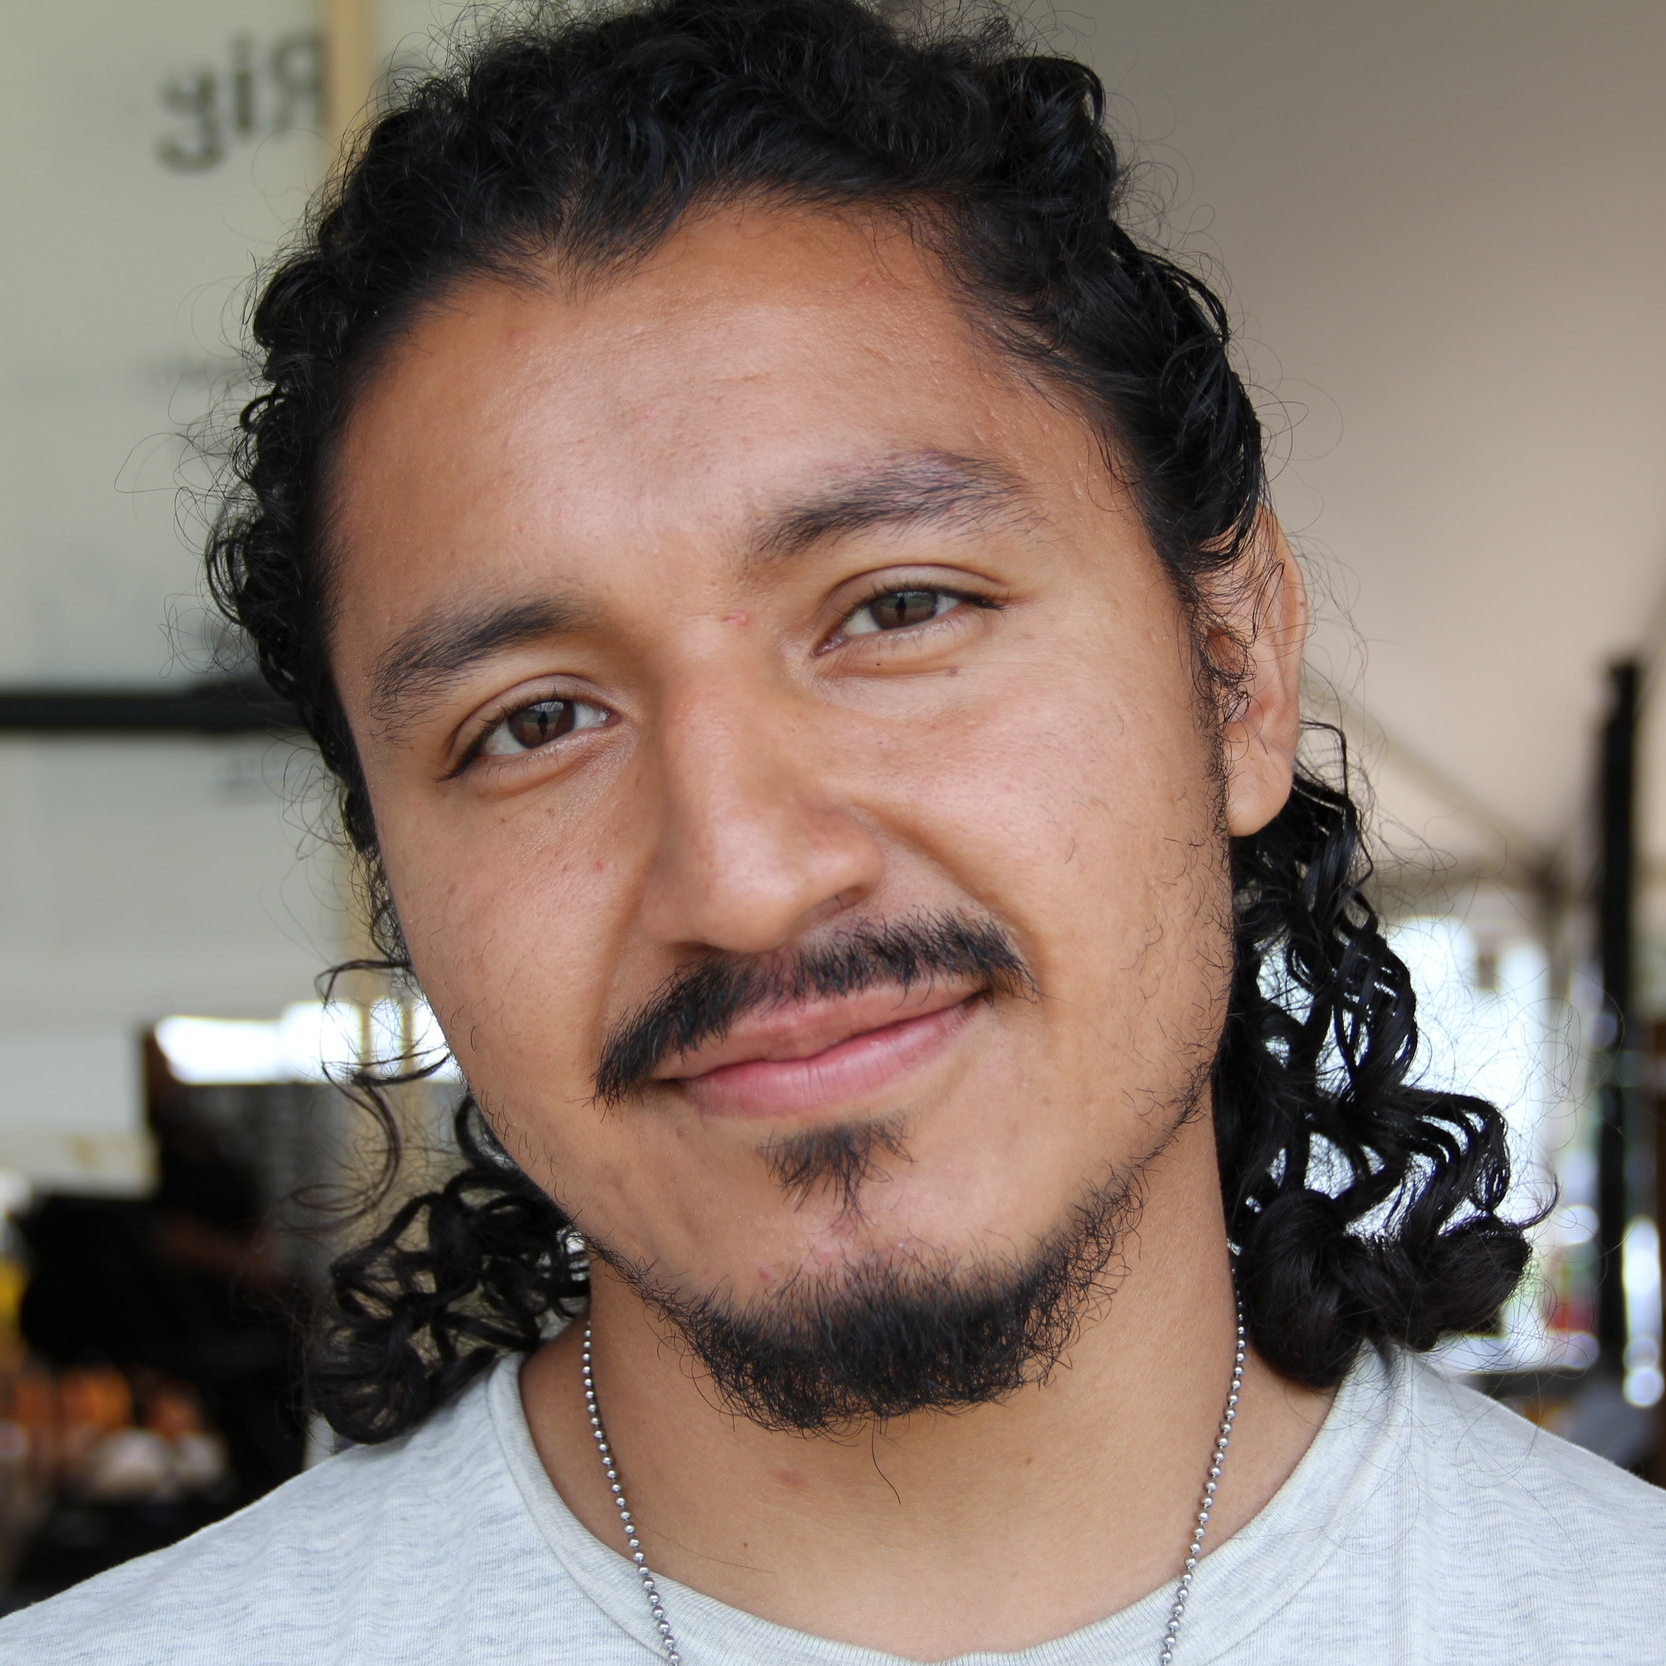 Carlos Santacruz is an organizer with the Poor People's Campaign and Michigan Welfare Rights Organization.